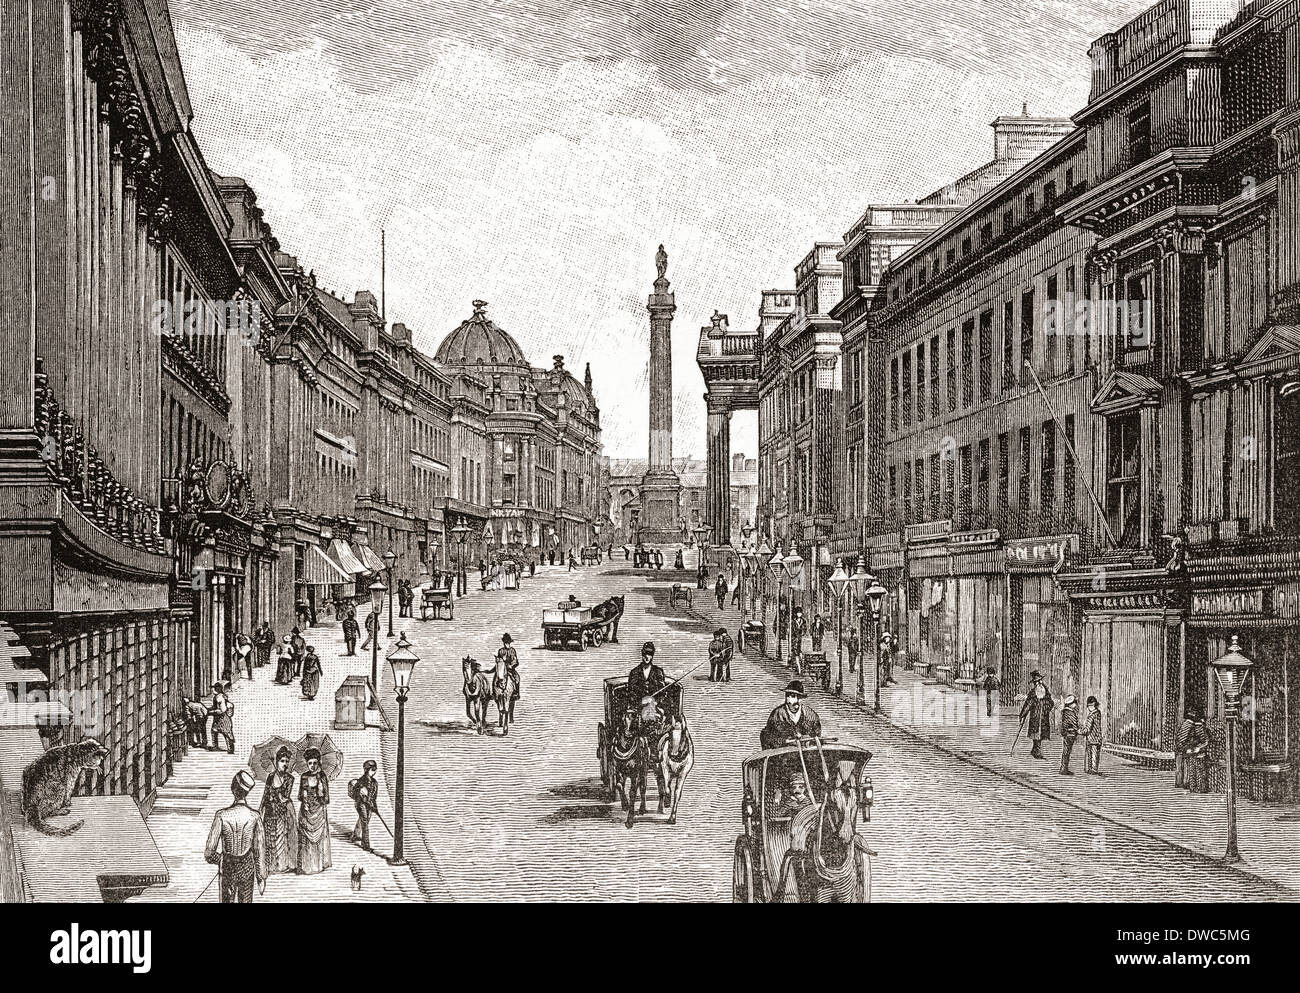 Grey Street Newcastle Upon Tyne England In The 19th Century